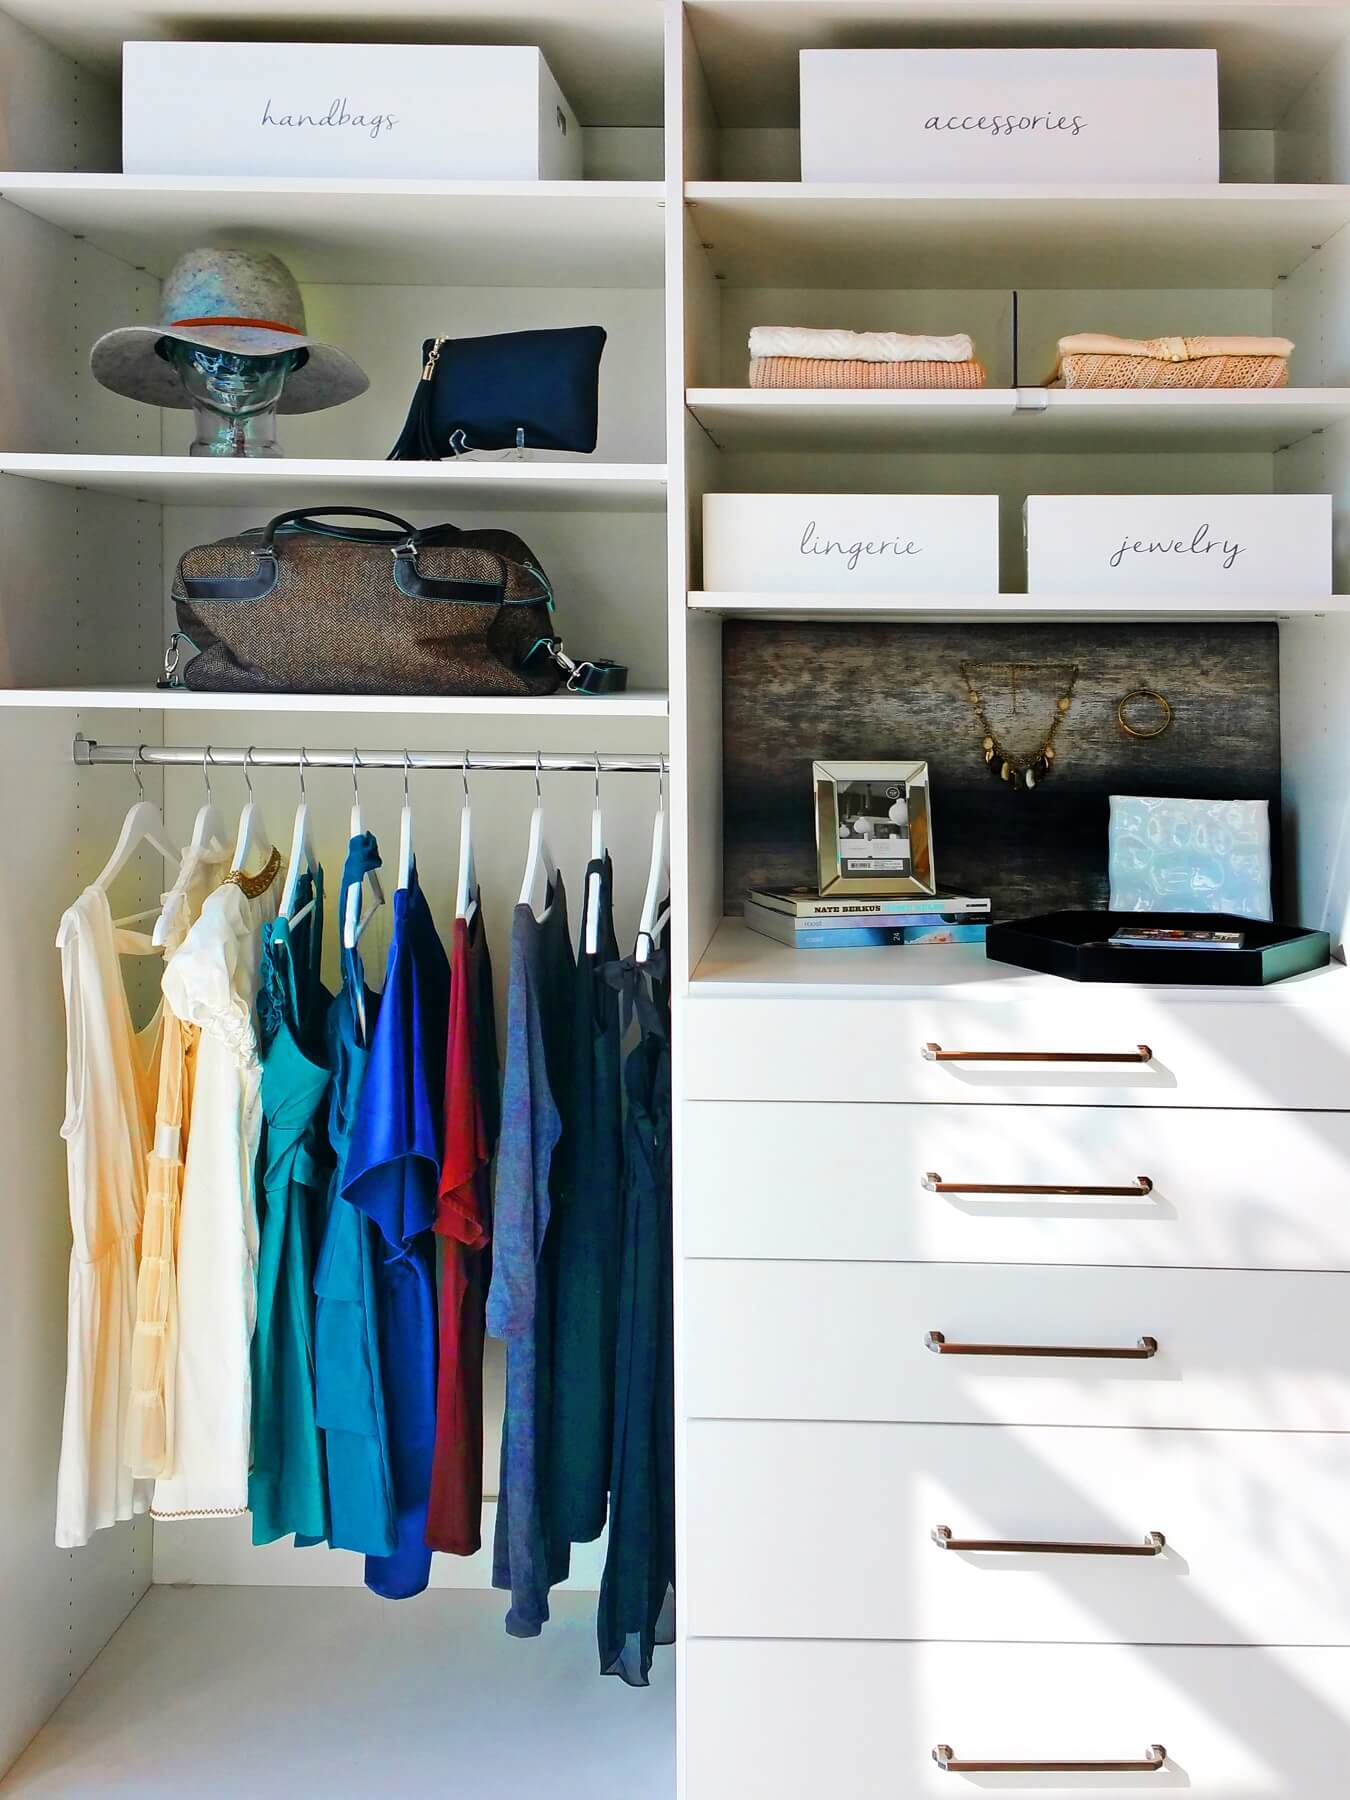 Creative ways to store hats and jewelry add style — and a bit of fun — to your closet space.